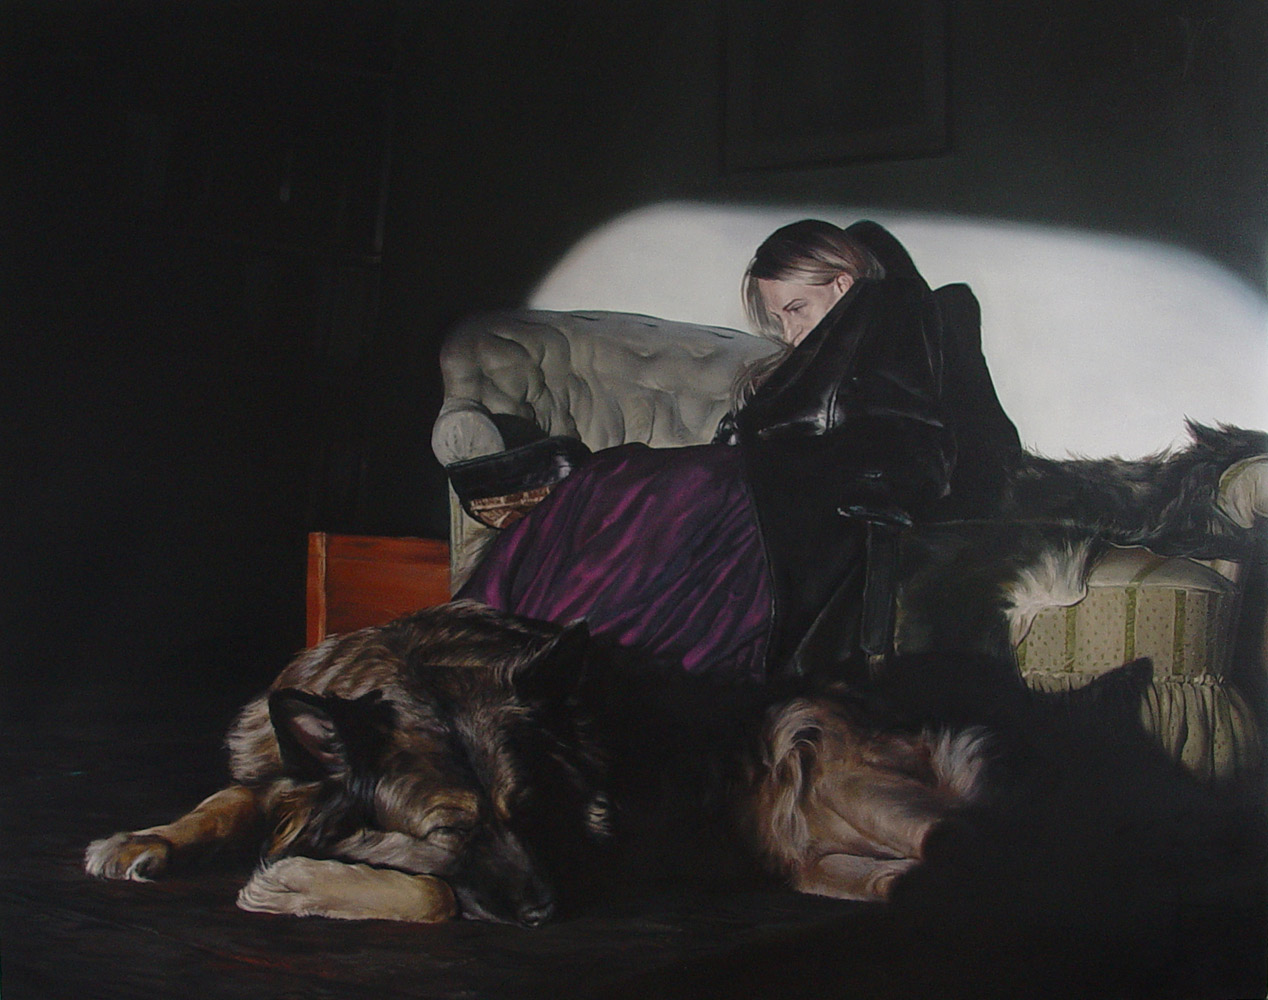 nightwatch | Oil on canvas 63 x78.7 inches / 160 x 200 centimeters